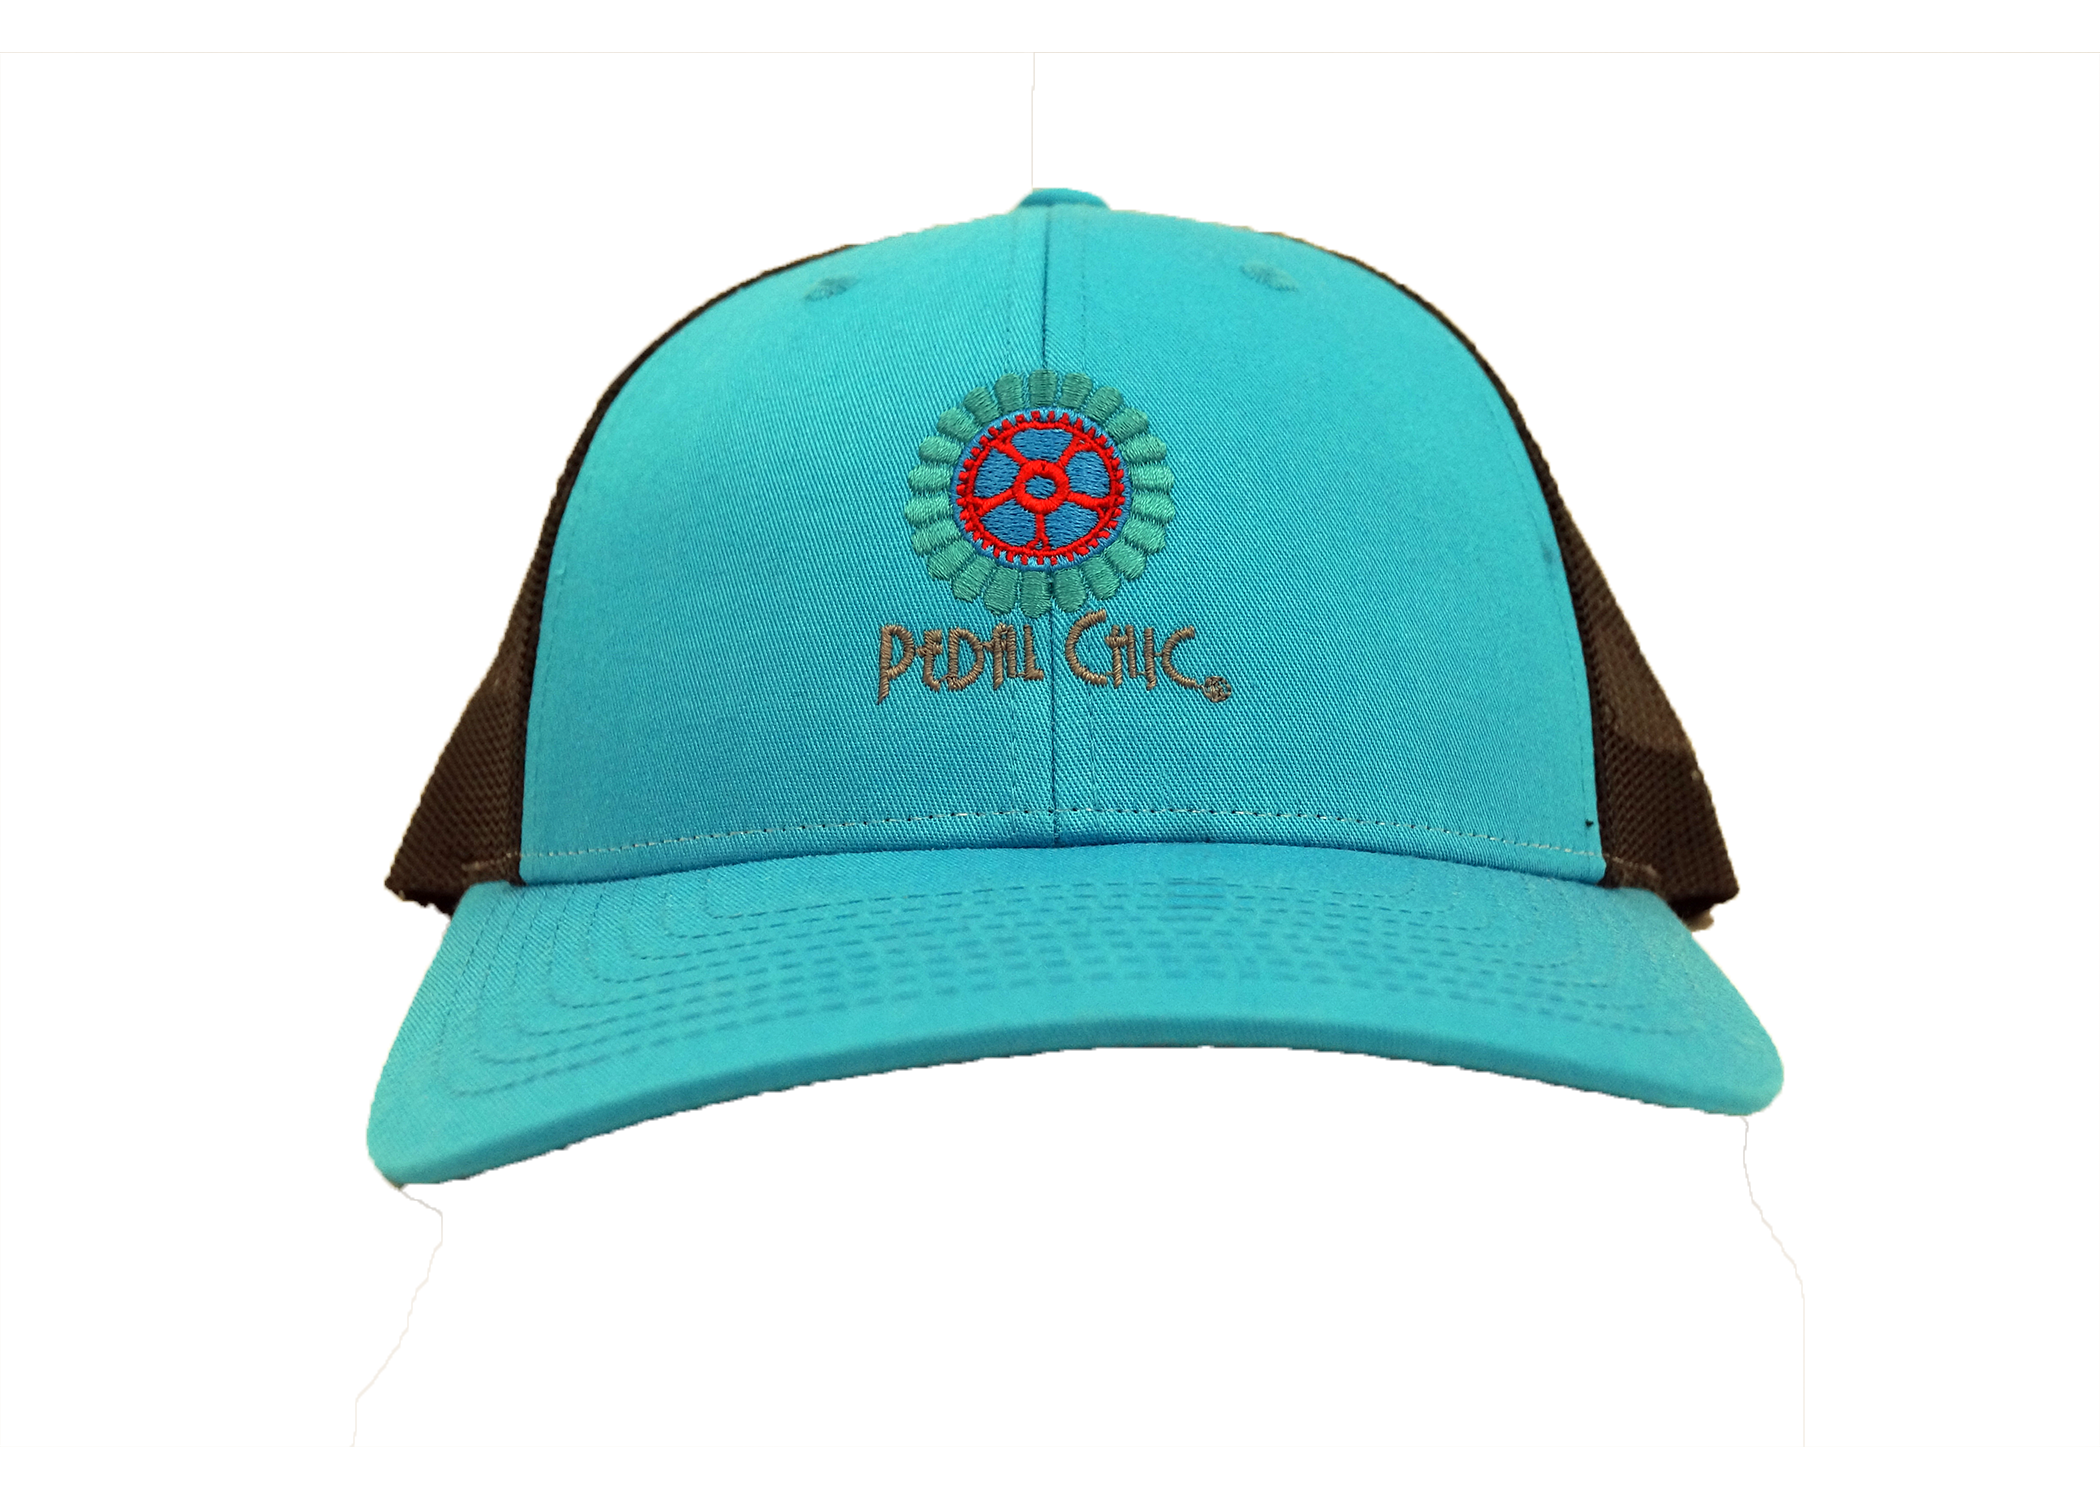 Pedal Chic Trucker Hat